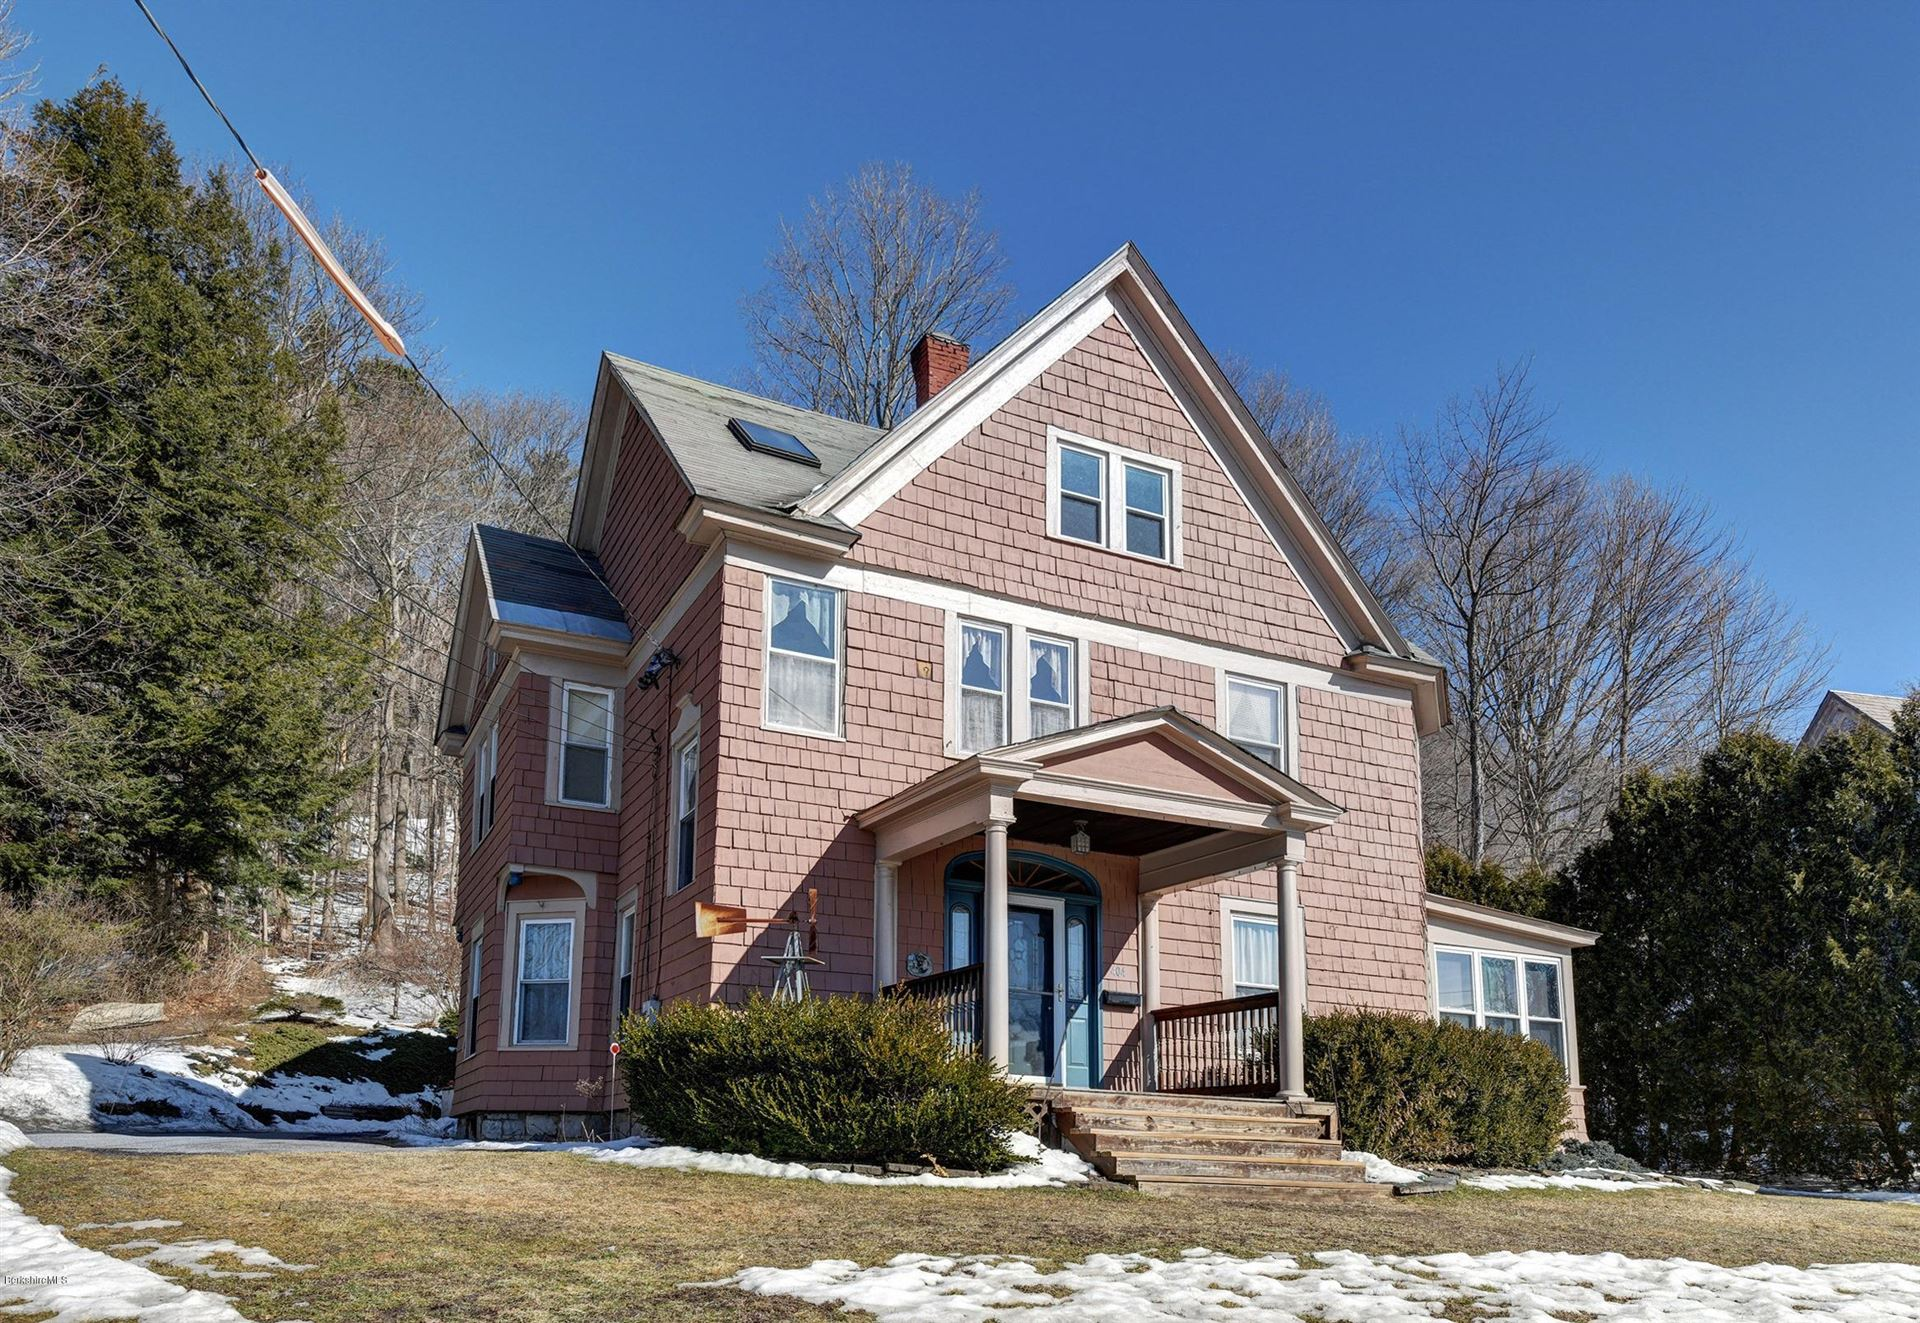 404 Church St, North Adams, MA 01247 - #: 229935